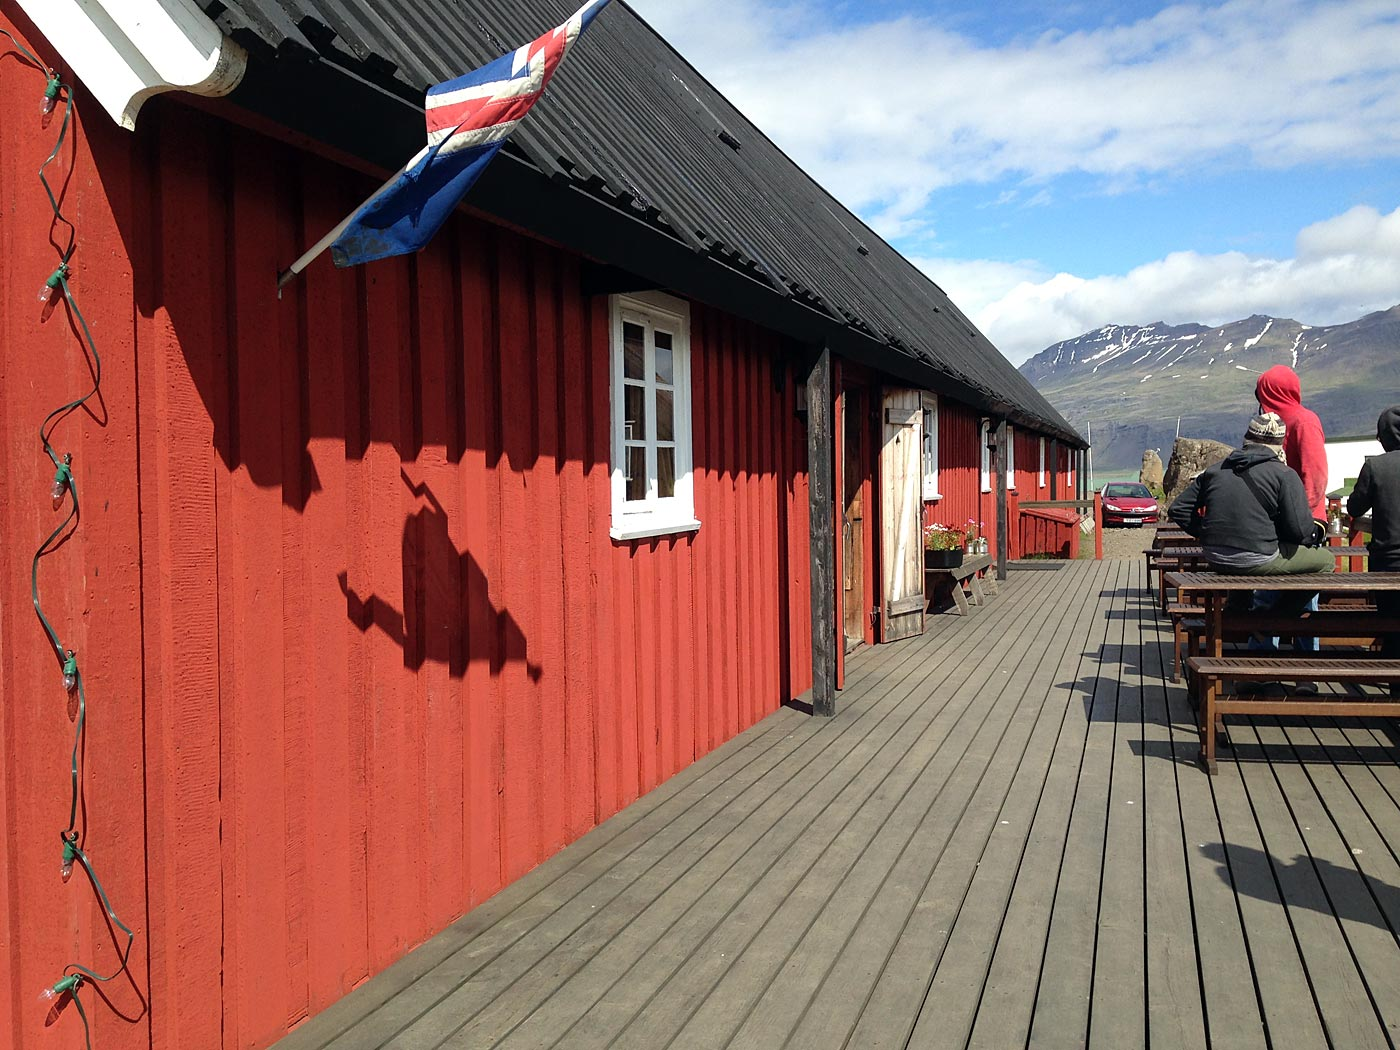 Around Iceland. Day II. Djúpivogur - Eskifjöður. - Langabúð in Djúpivogur - a building with a long history. More about it <a href='http://www.rikardssafn.is/web/?&OZON=Z3JvdXA9OTUx' target='_blank' class='linksnormal'>here</a> (icelandic only). (3 July 2013)